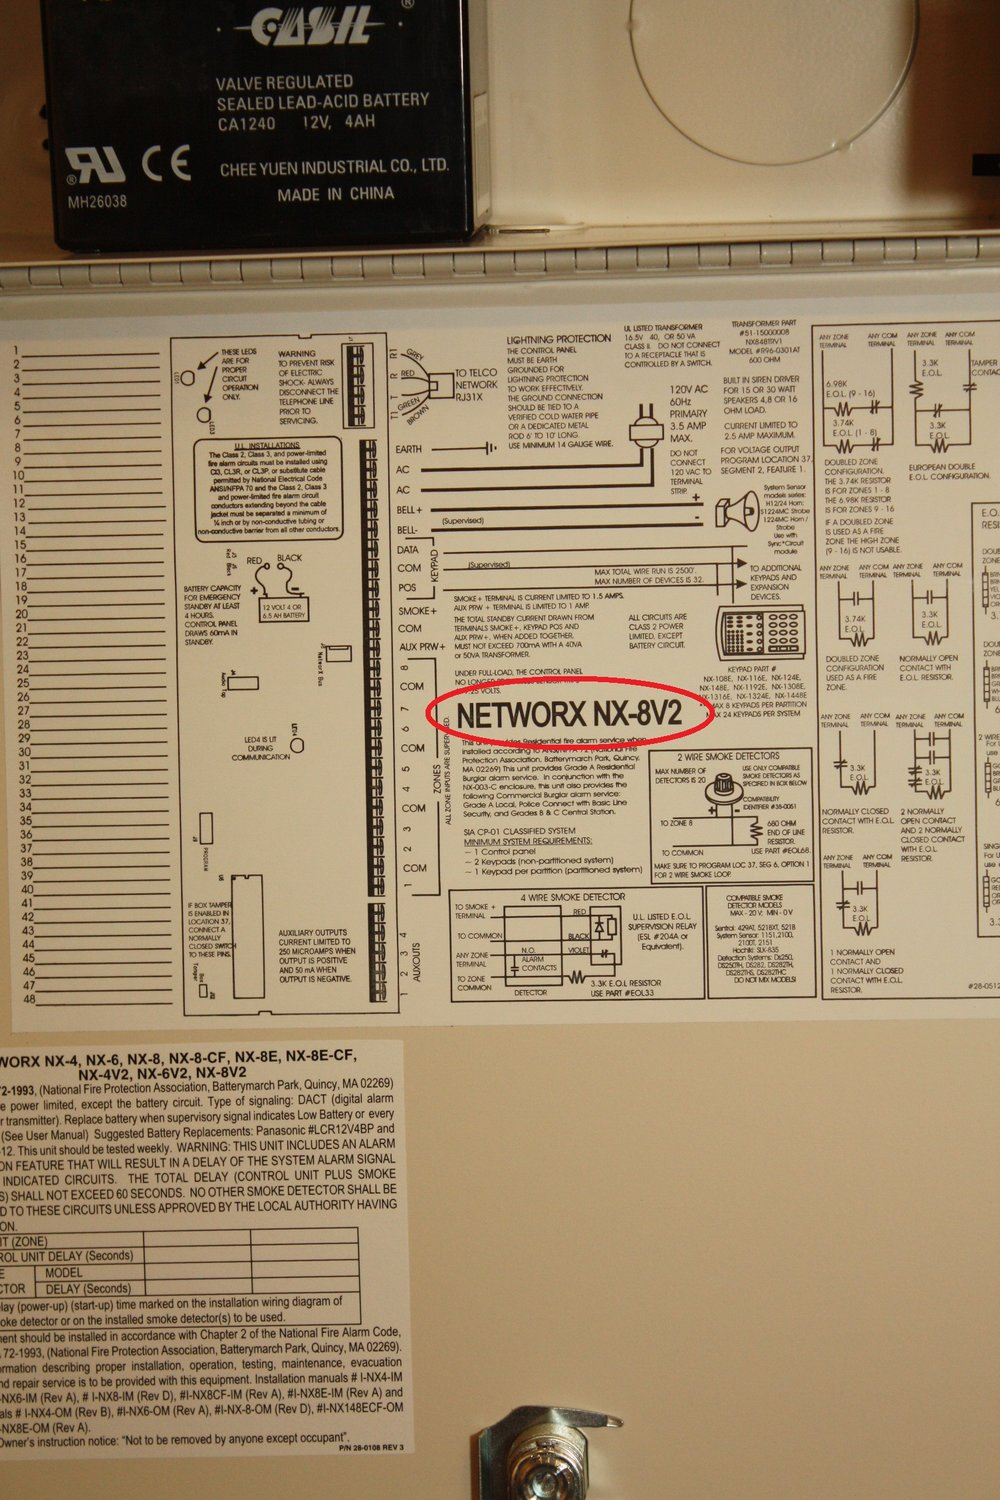 Hookup panel diagram for the Caddex NX 1192e Custom Alpha alarm system showing the location of the serial number - NCA Alarms Nashville TN